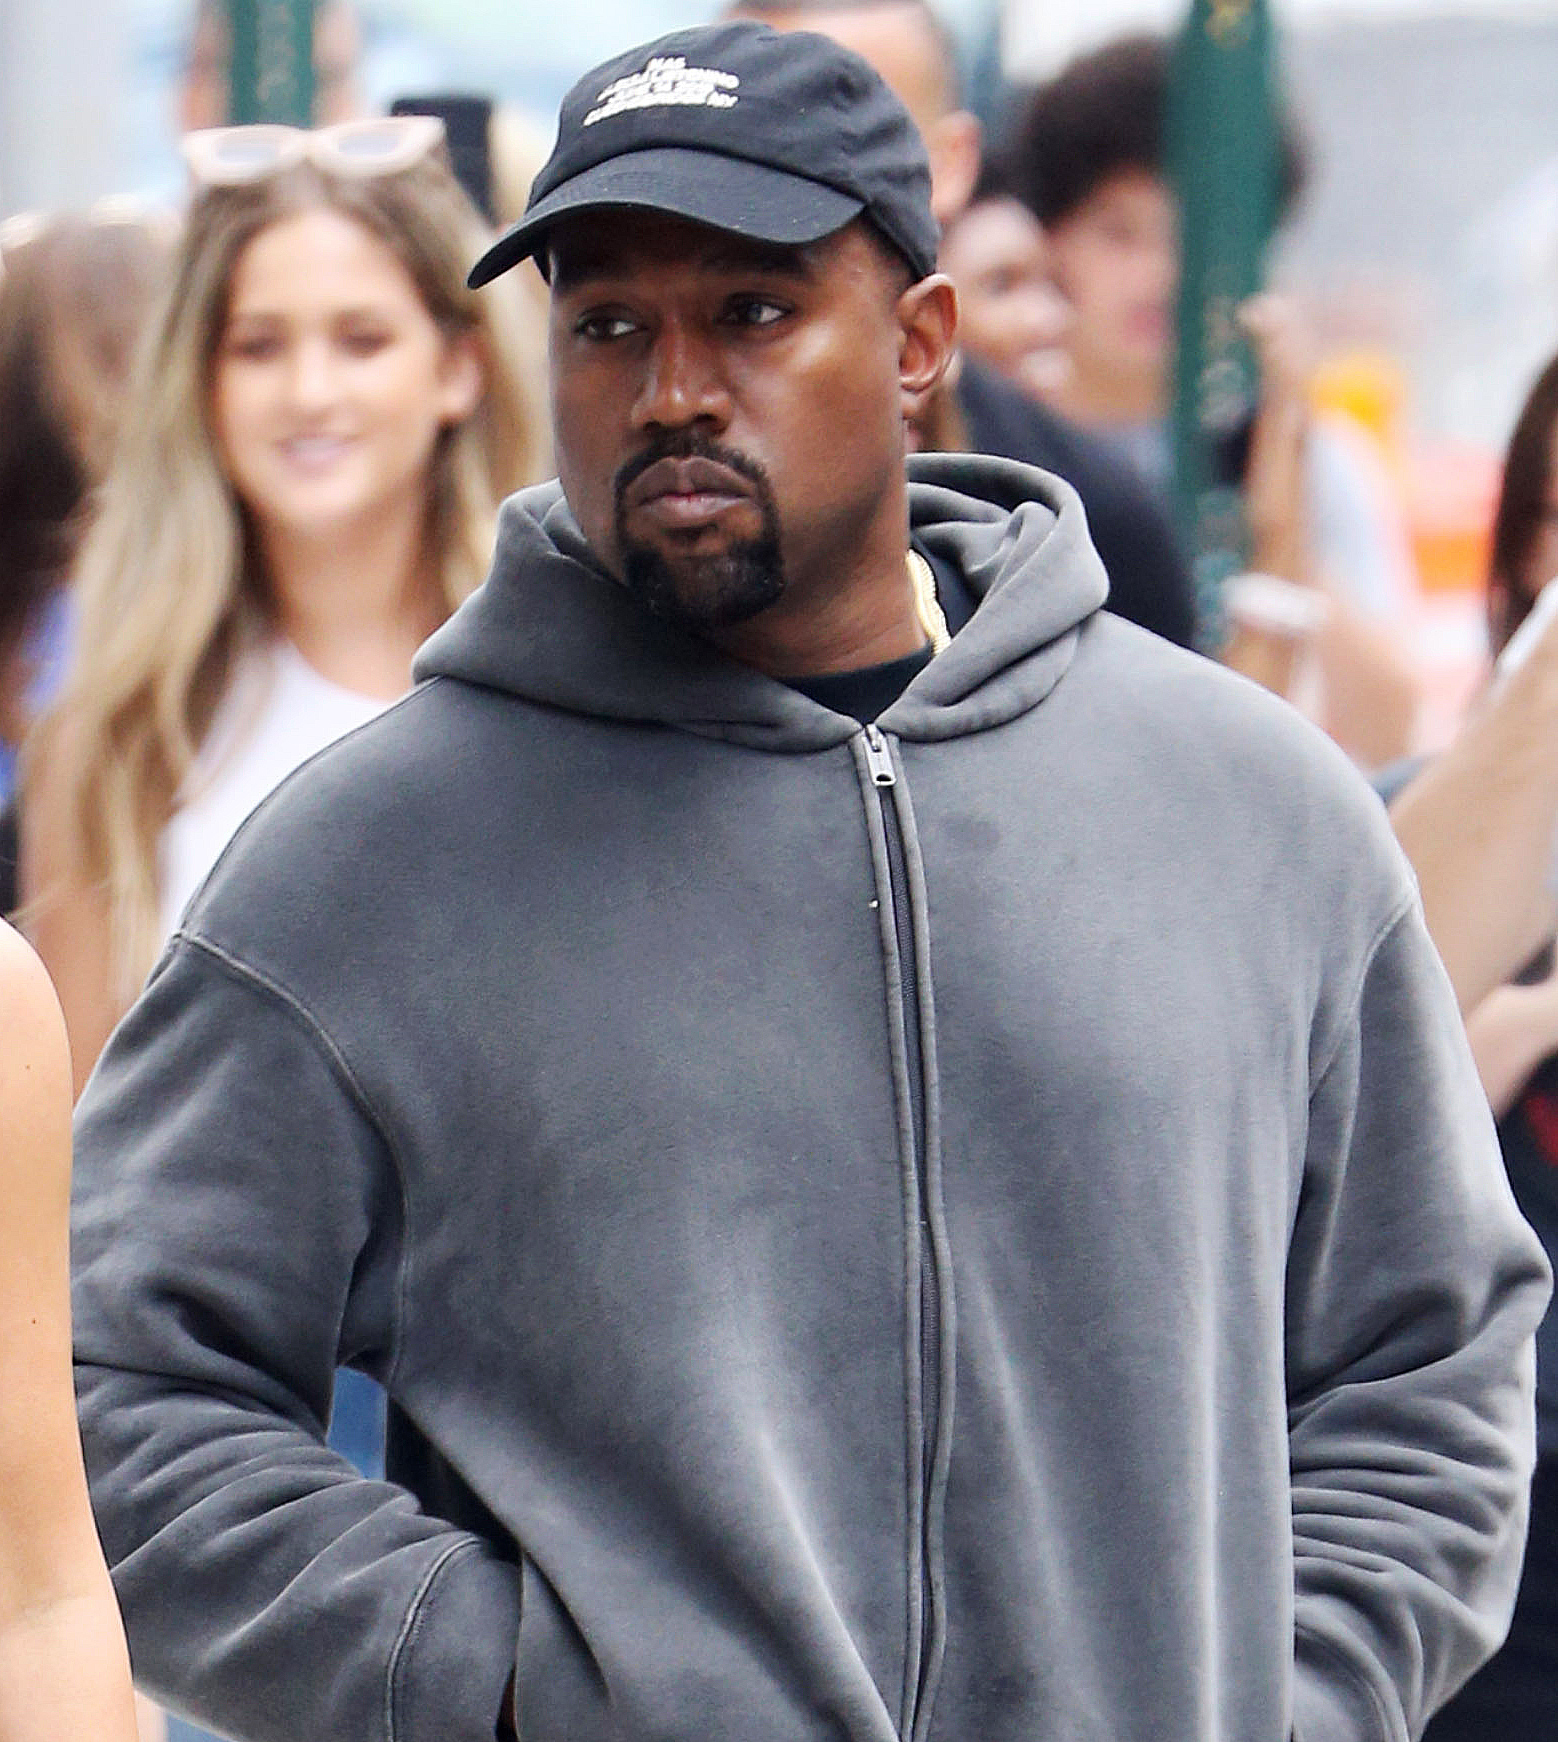 Kanye Wests Friend GLC the Ism Says Rappers Not OK Amid Recent Behavior